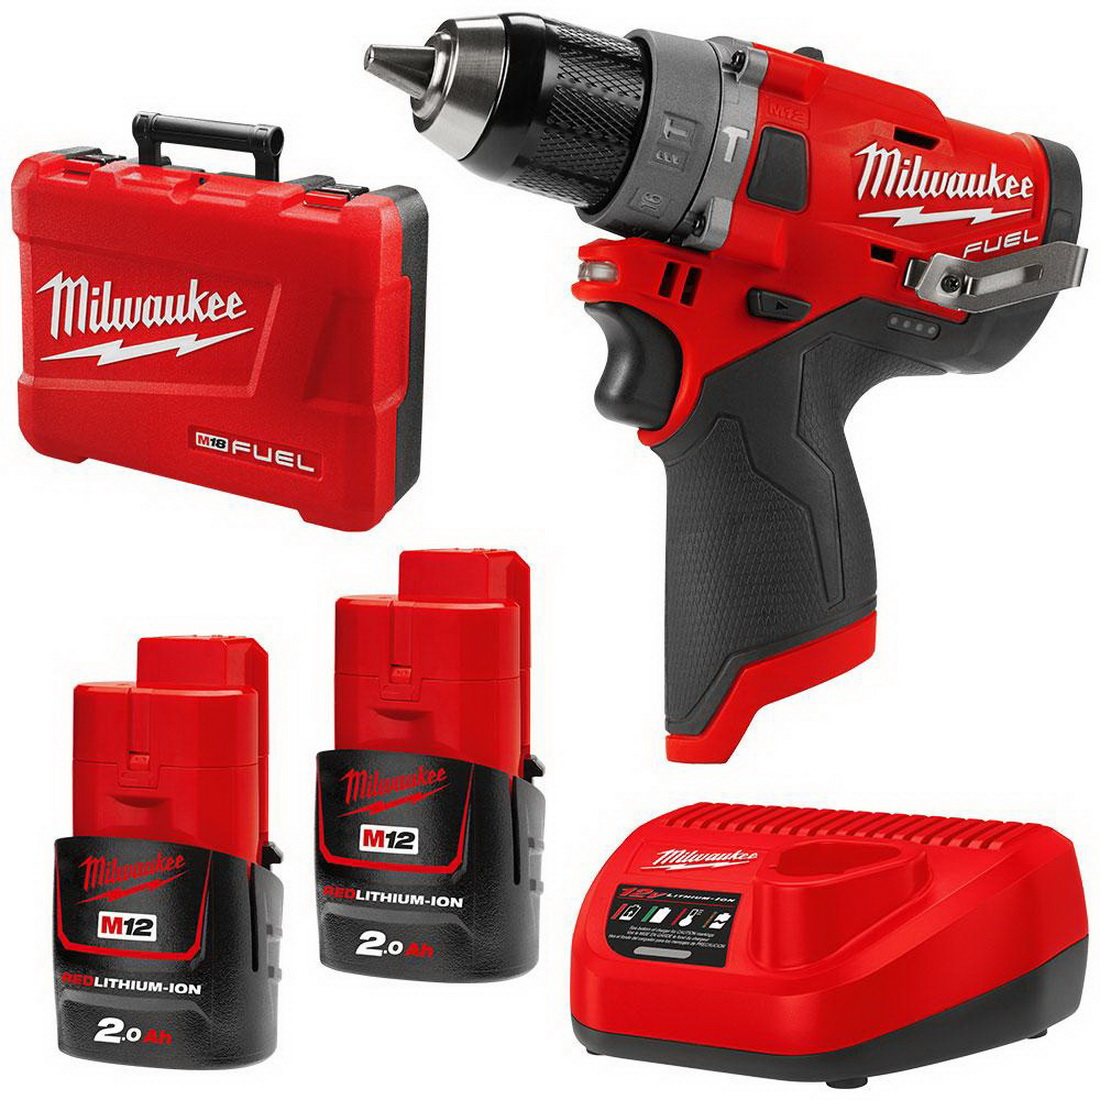 M12 FUEL Cordless Hammer Drill and Driver Combo Kit 13mm 2.0Ah